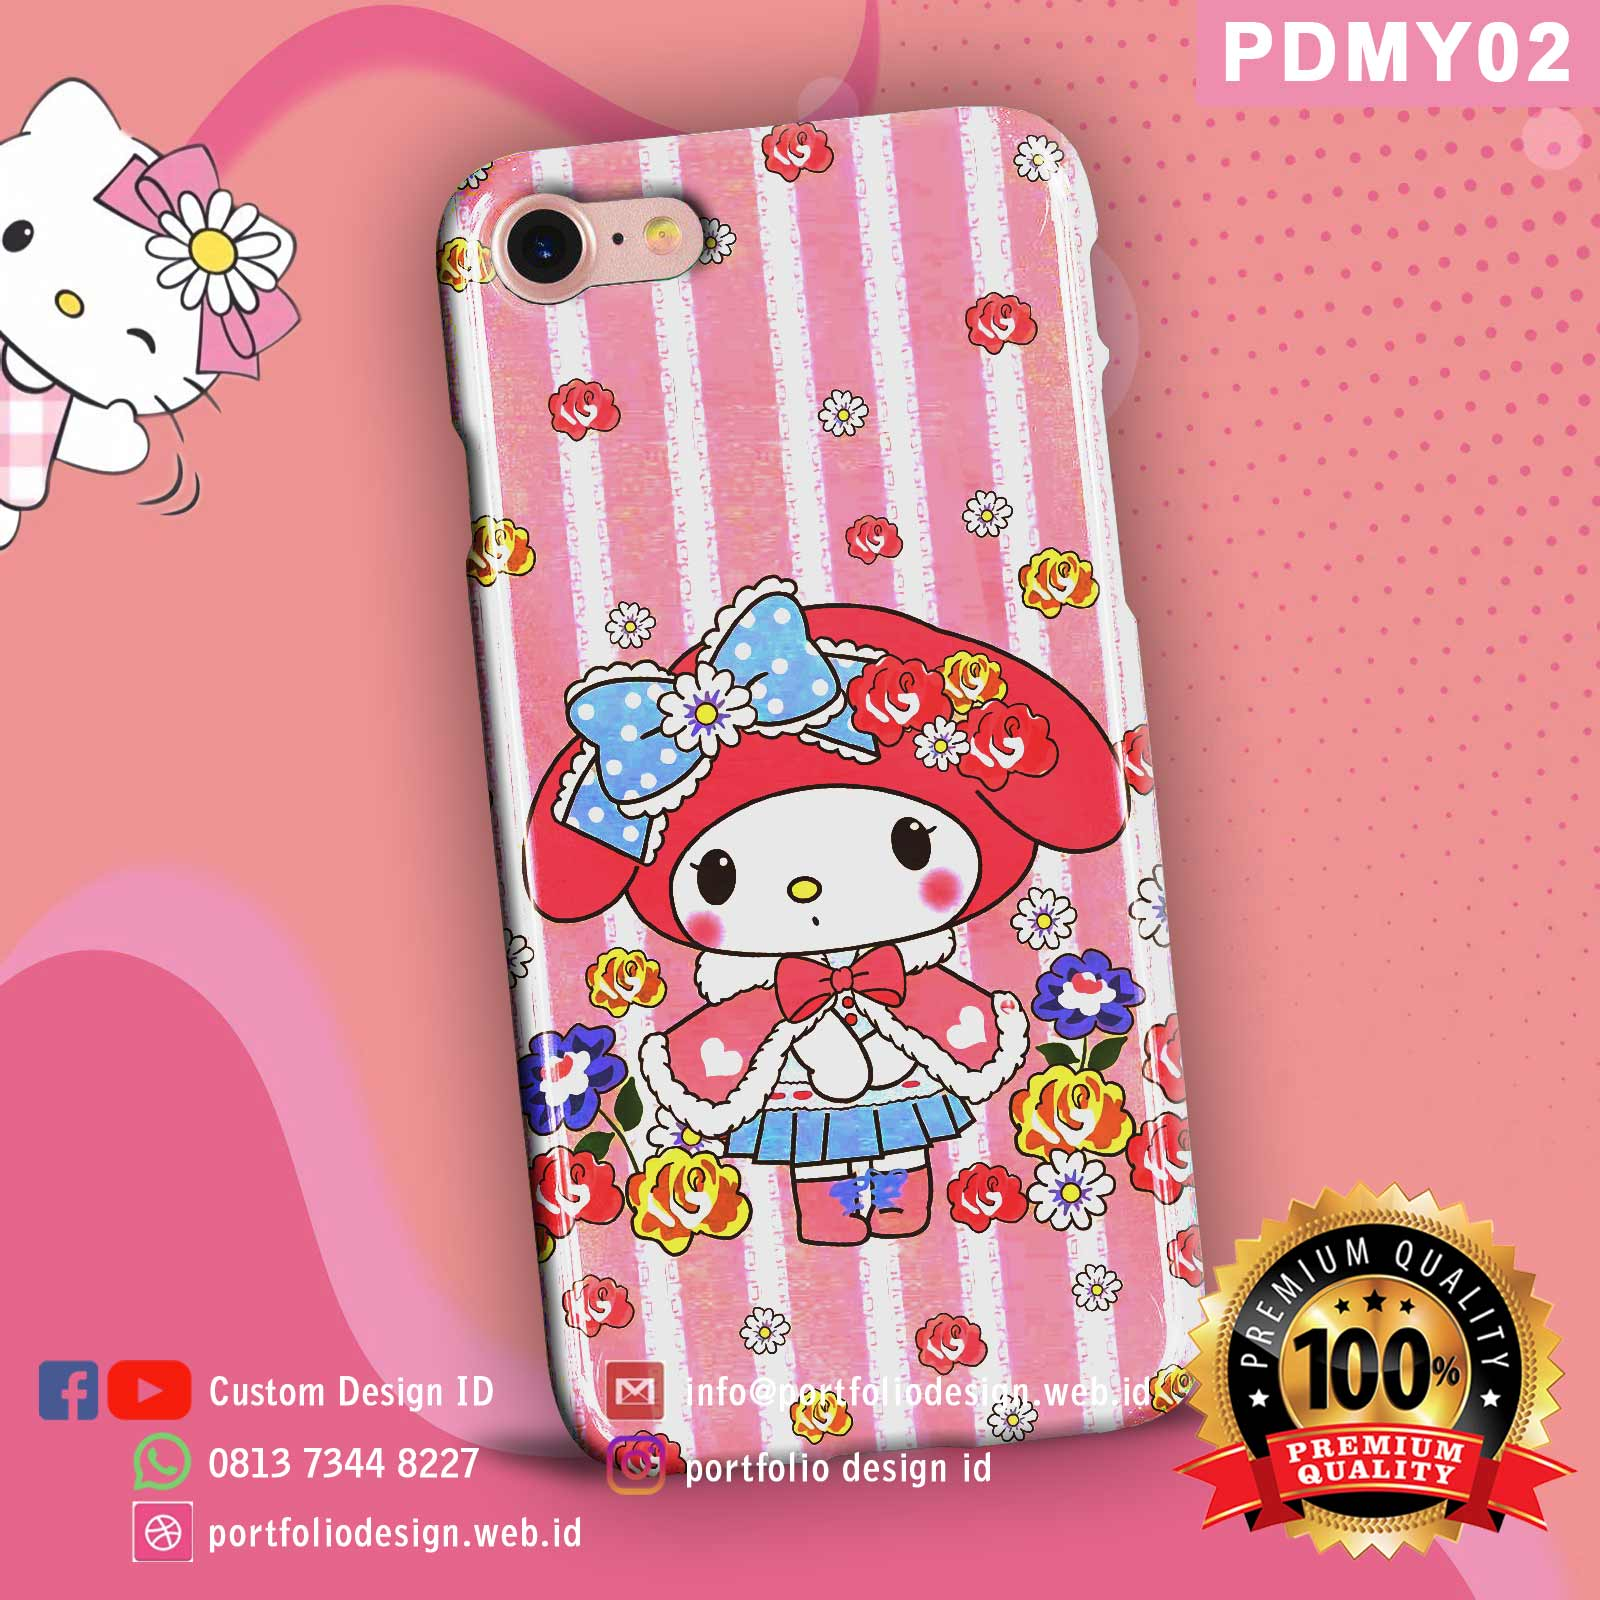 Casing hp my melody PDMY02